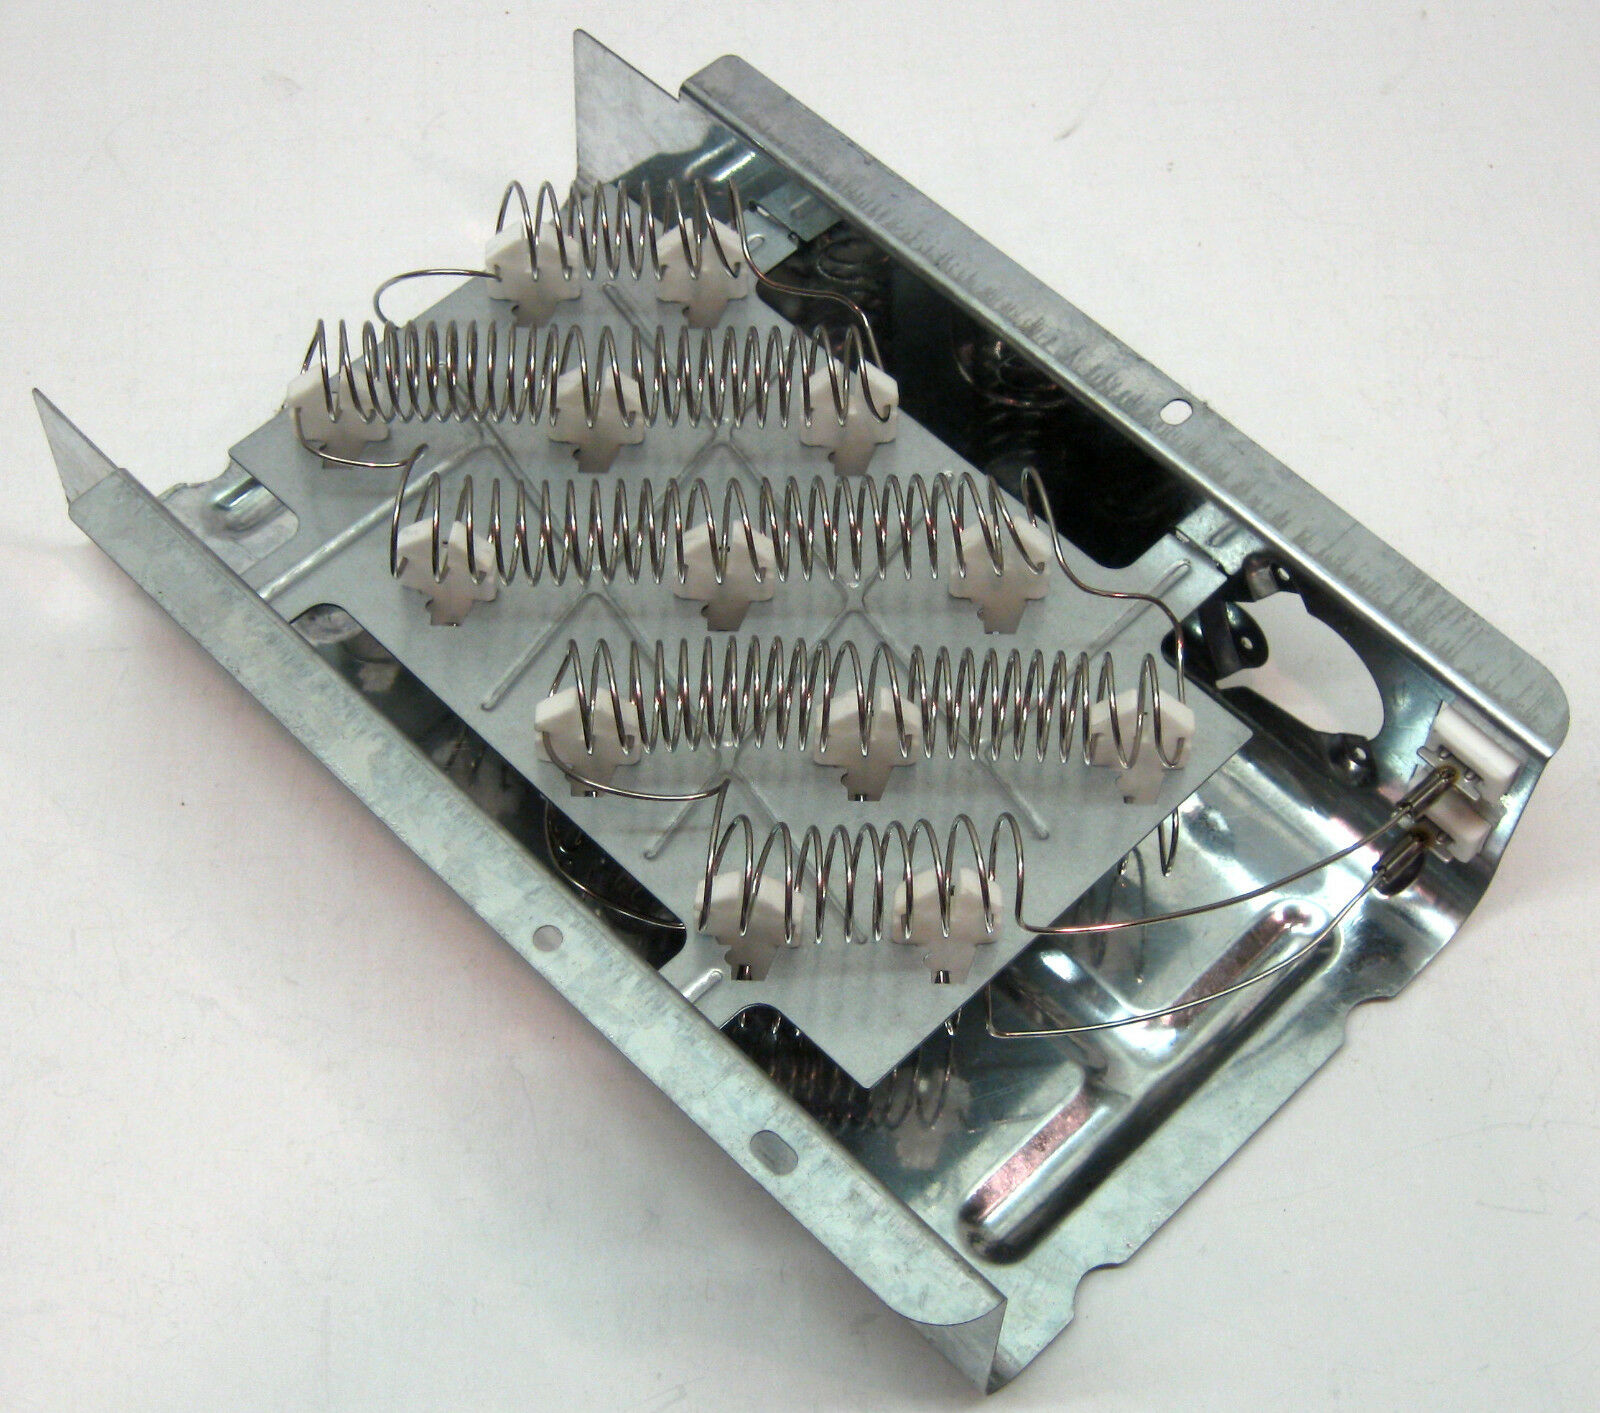 279838 for whirlpool kenmore dryer heater heating element ps3343130 ap3094254 picclick - Replace whirlpool dryer heating element ...